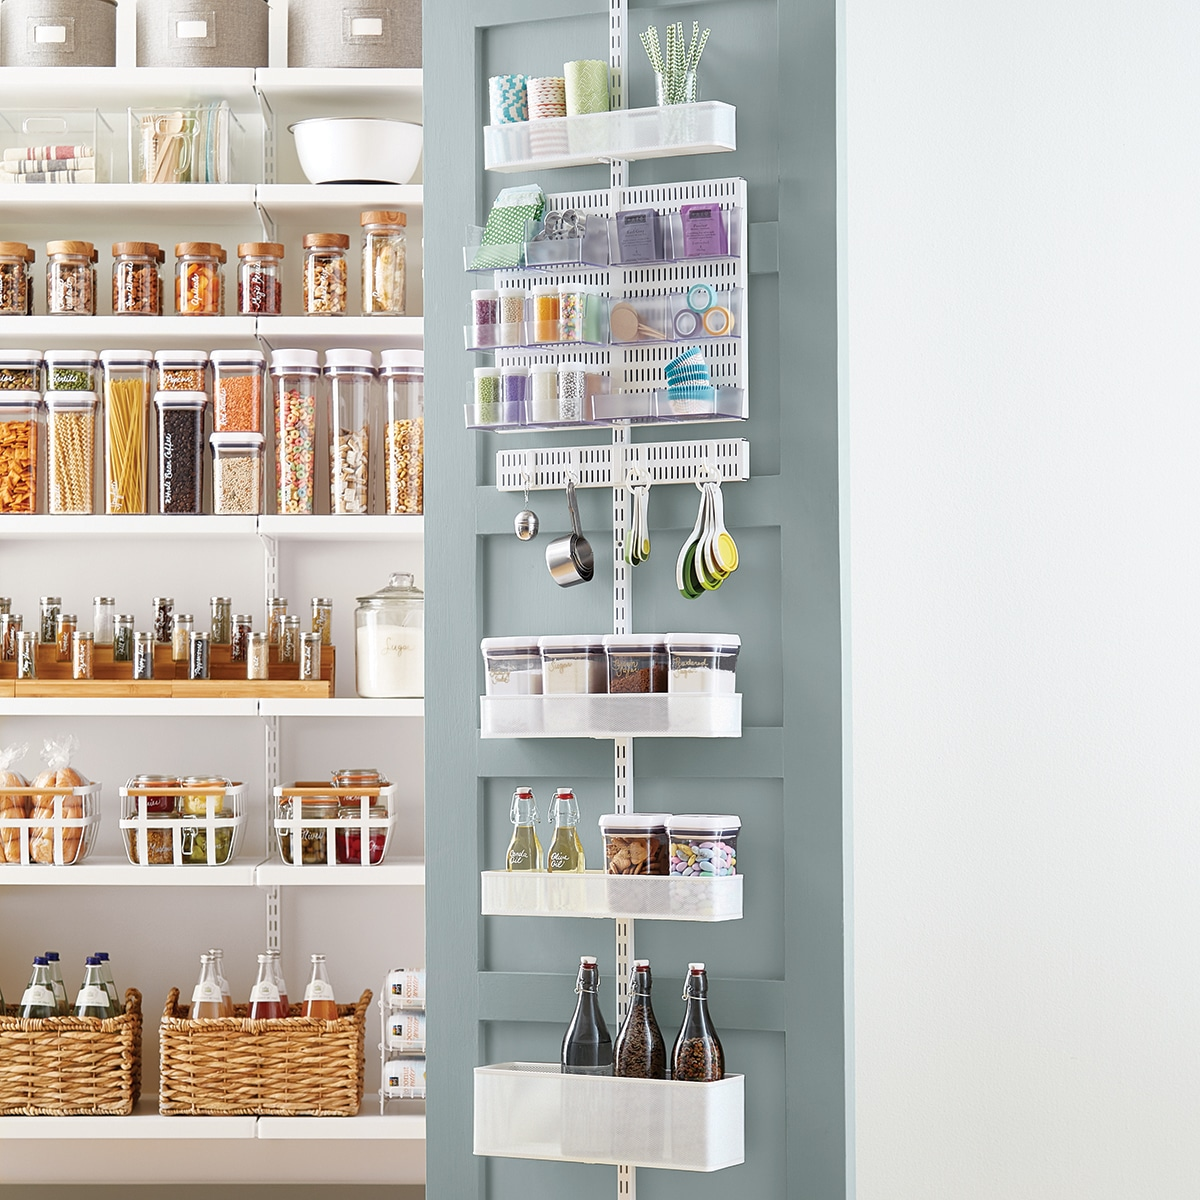 Elfa door storage system for small pantry